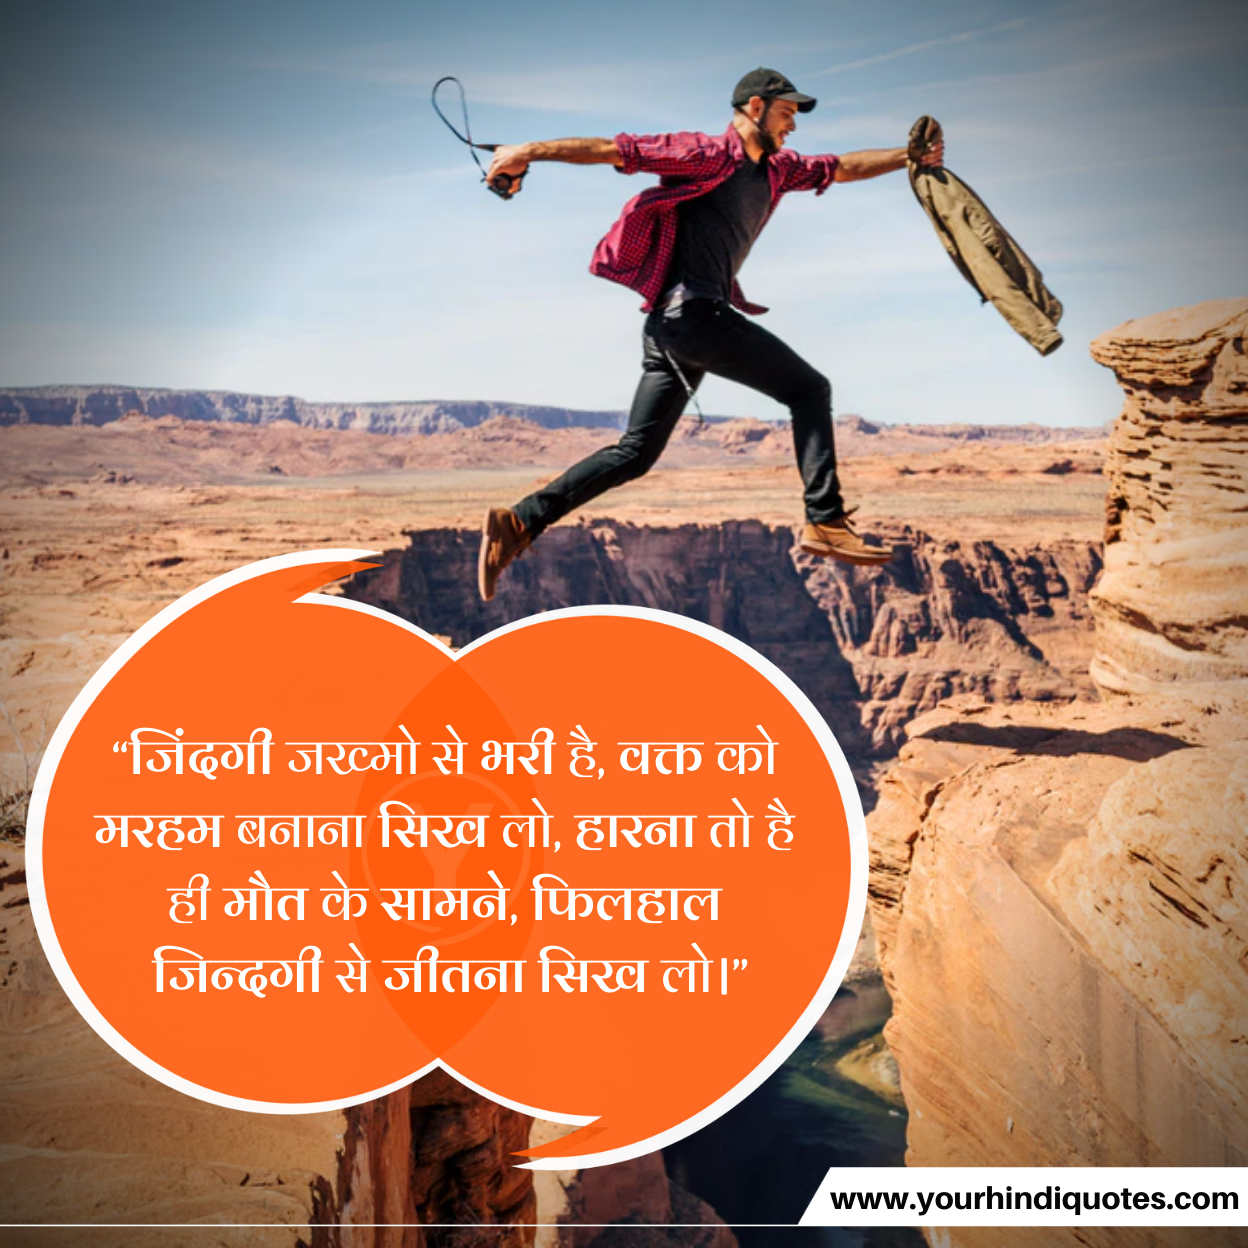 Hindi Best Life Quotes Image